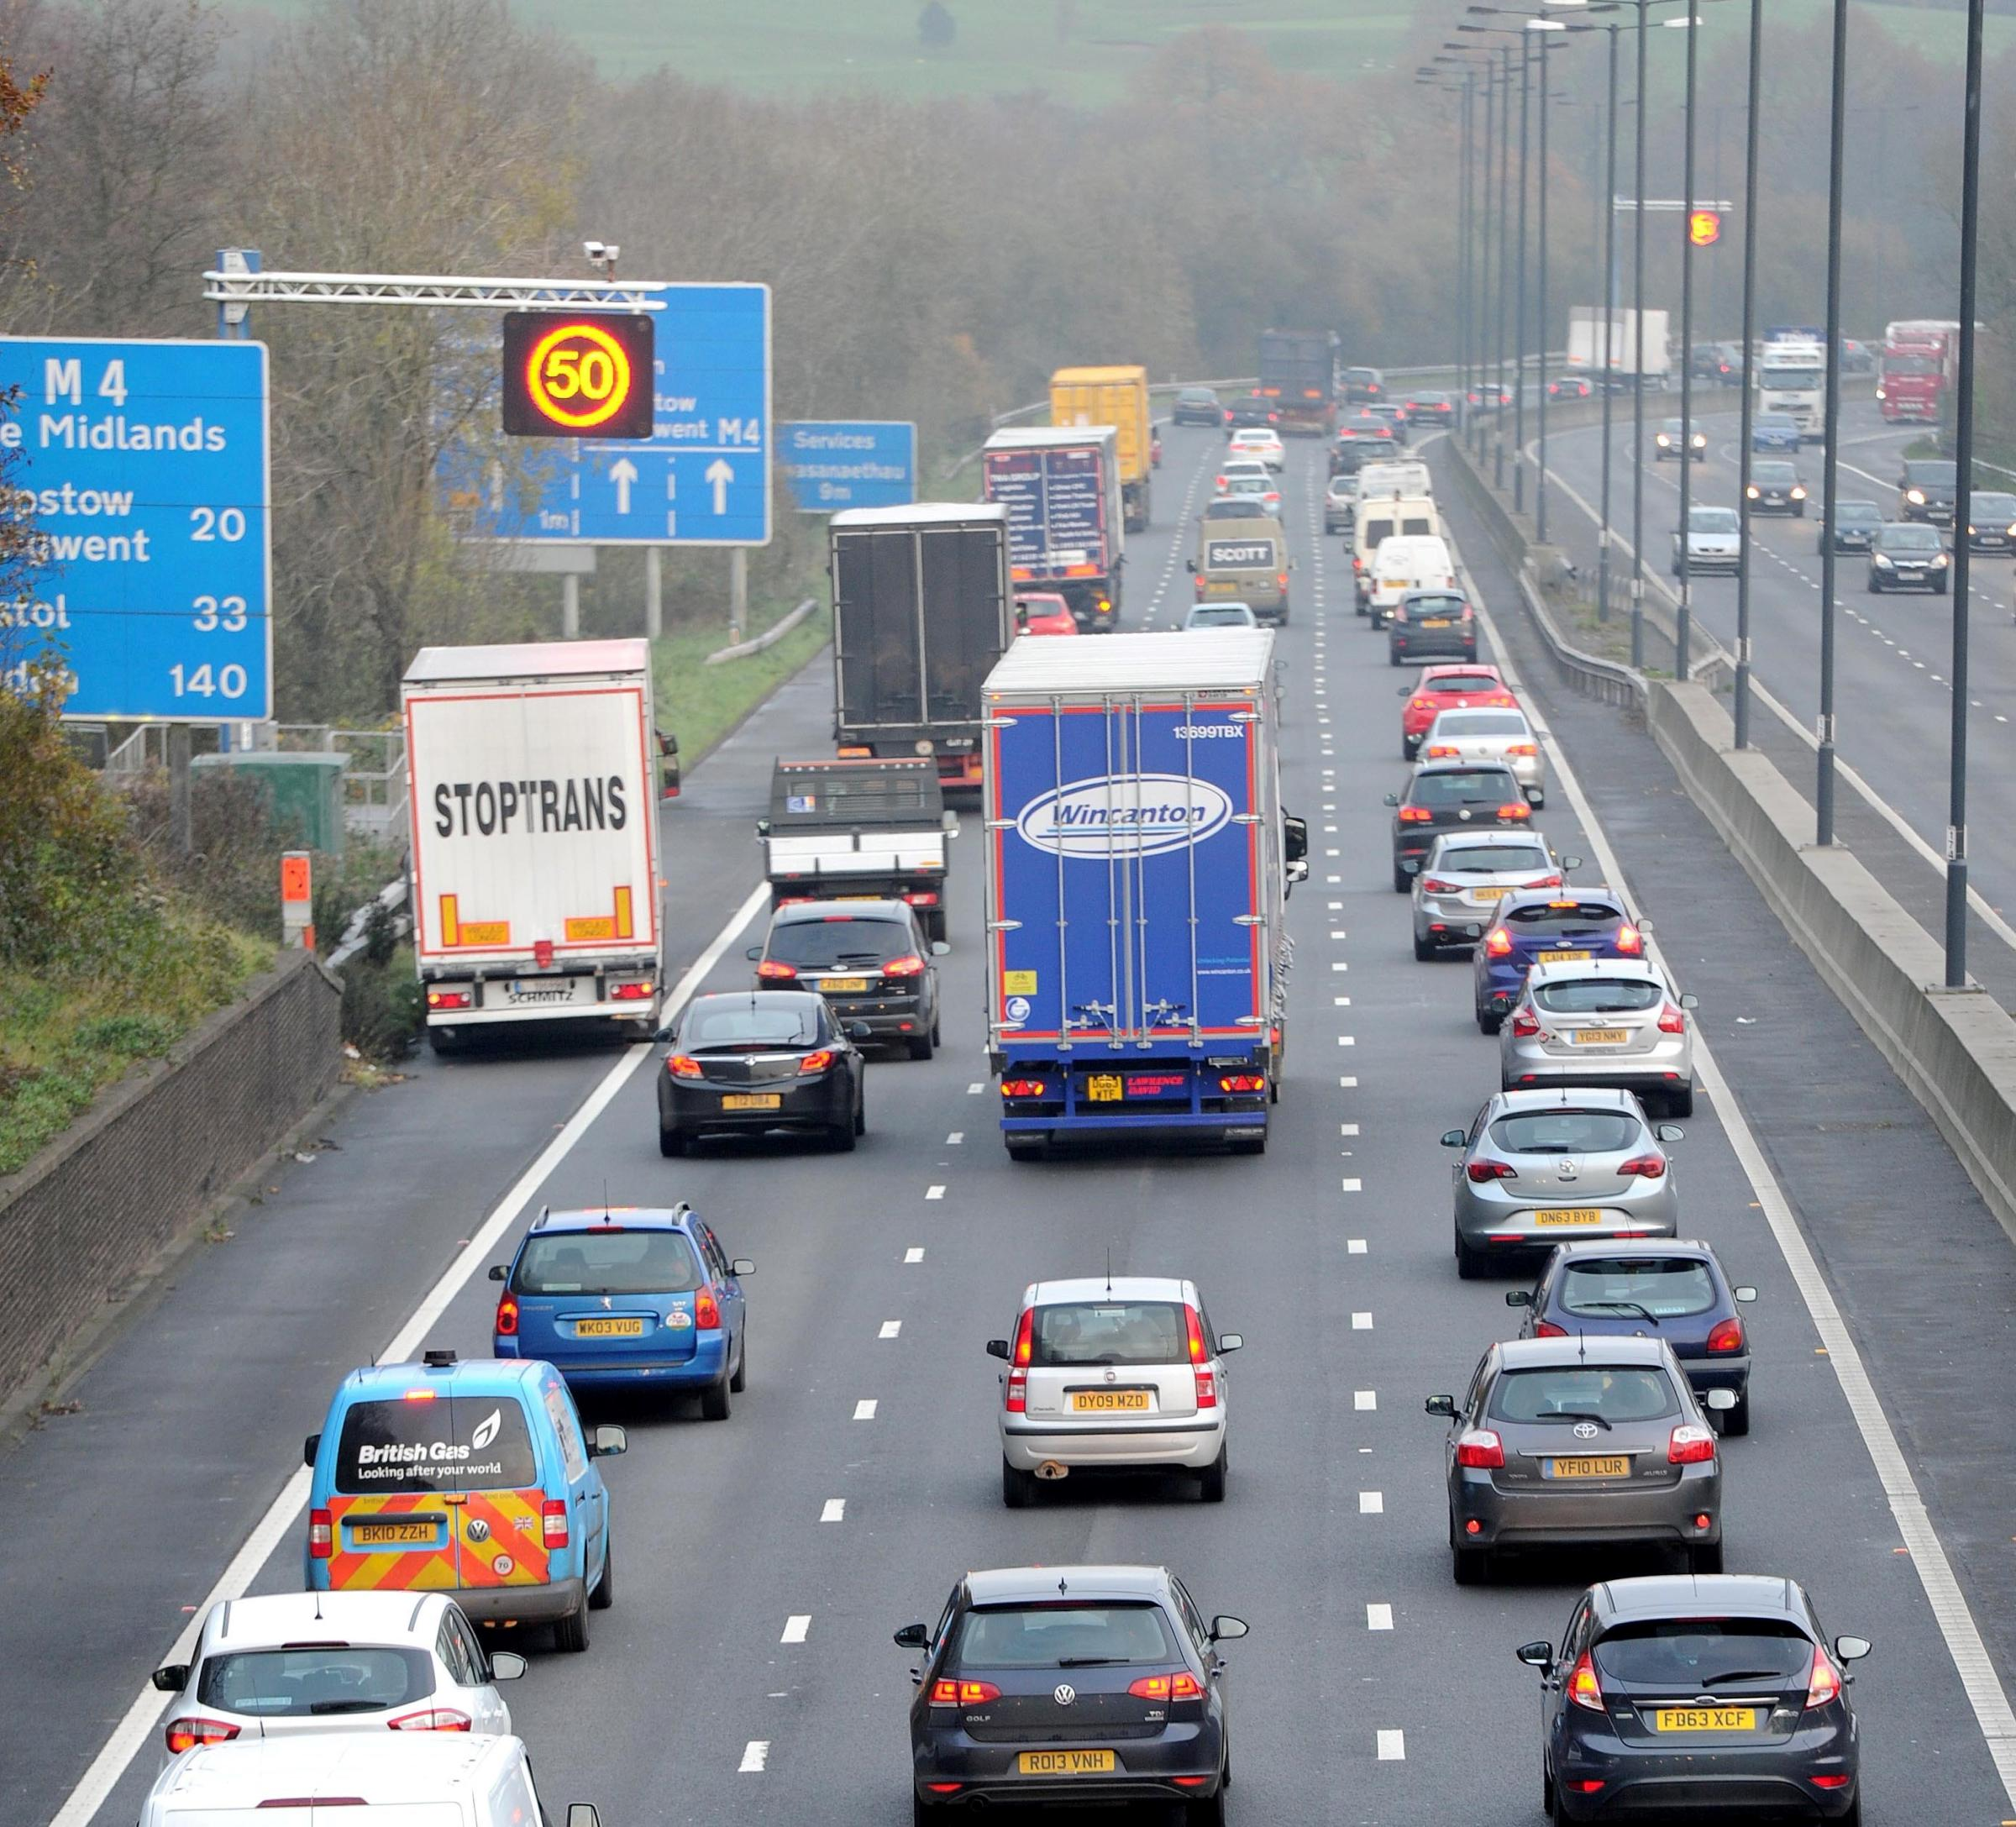 Variable speed limit. Traffic on the M4 during morning rush hour, Newport.